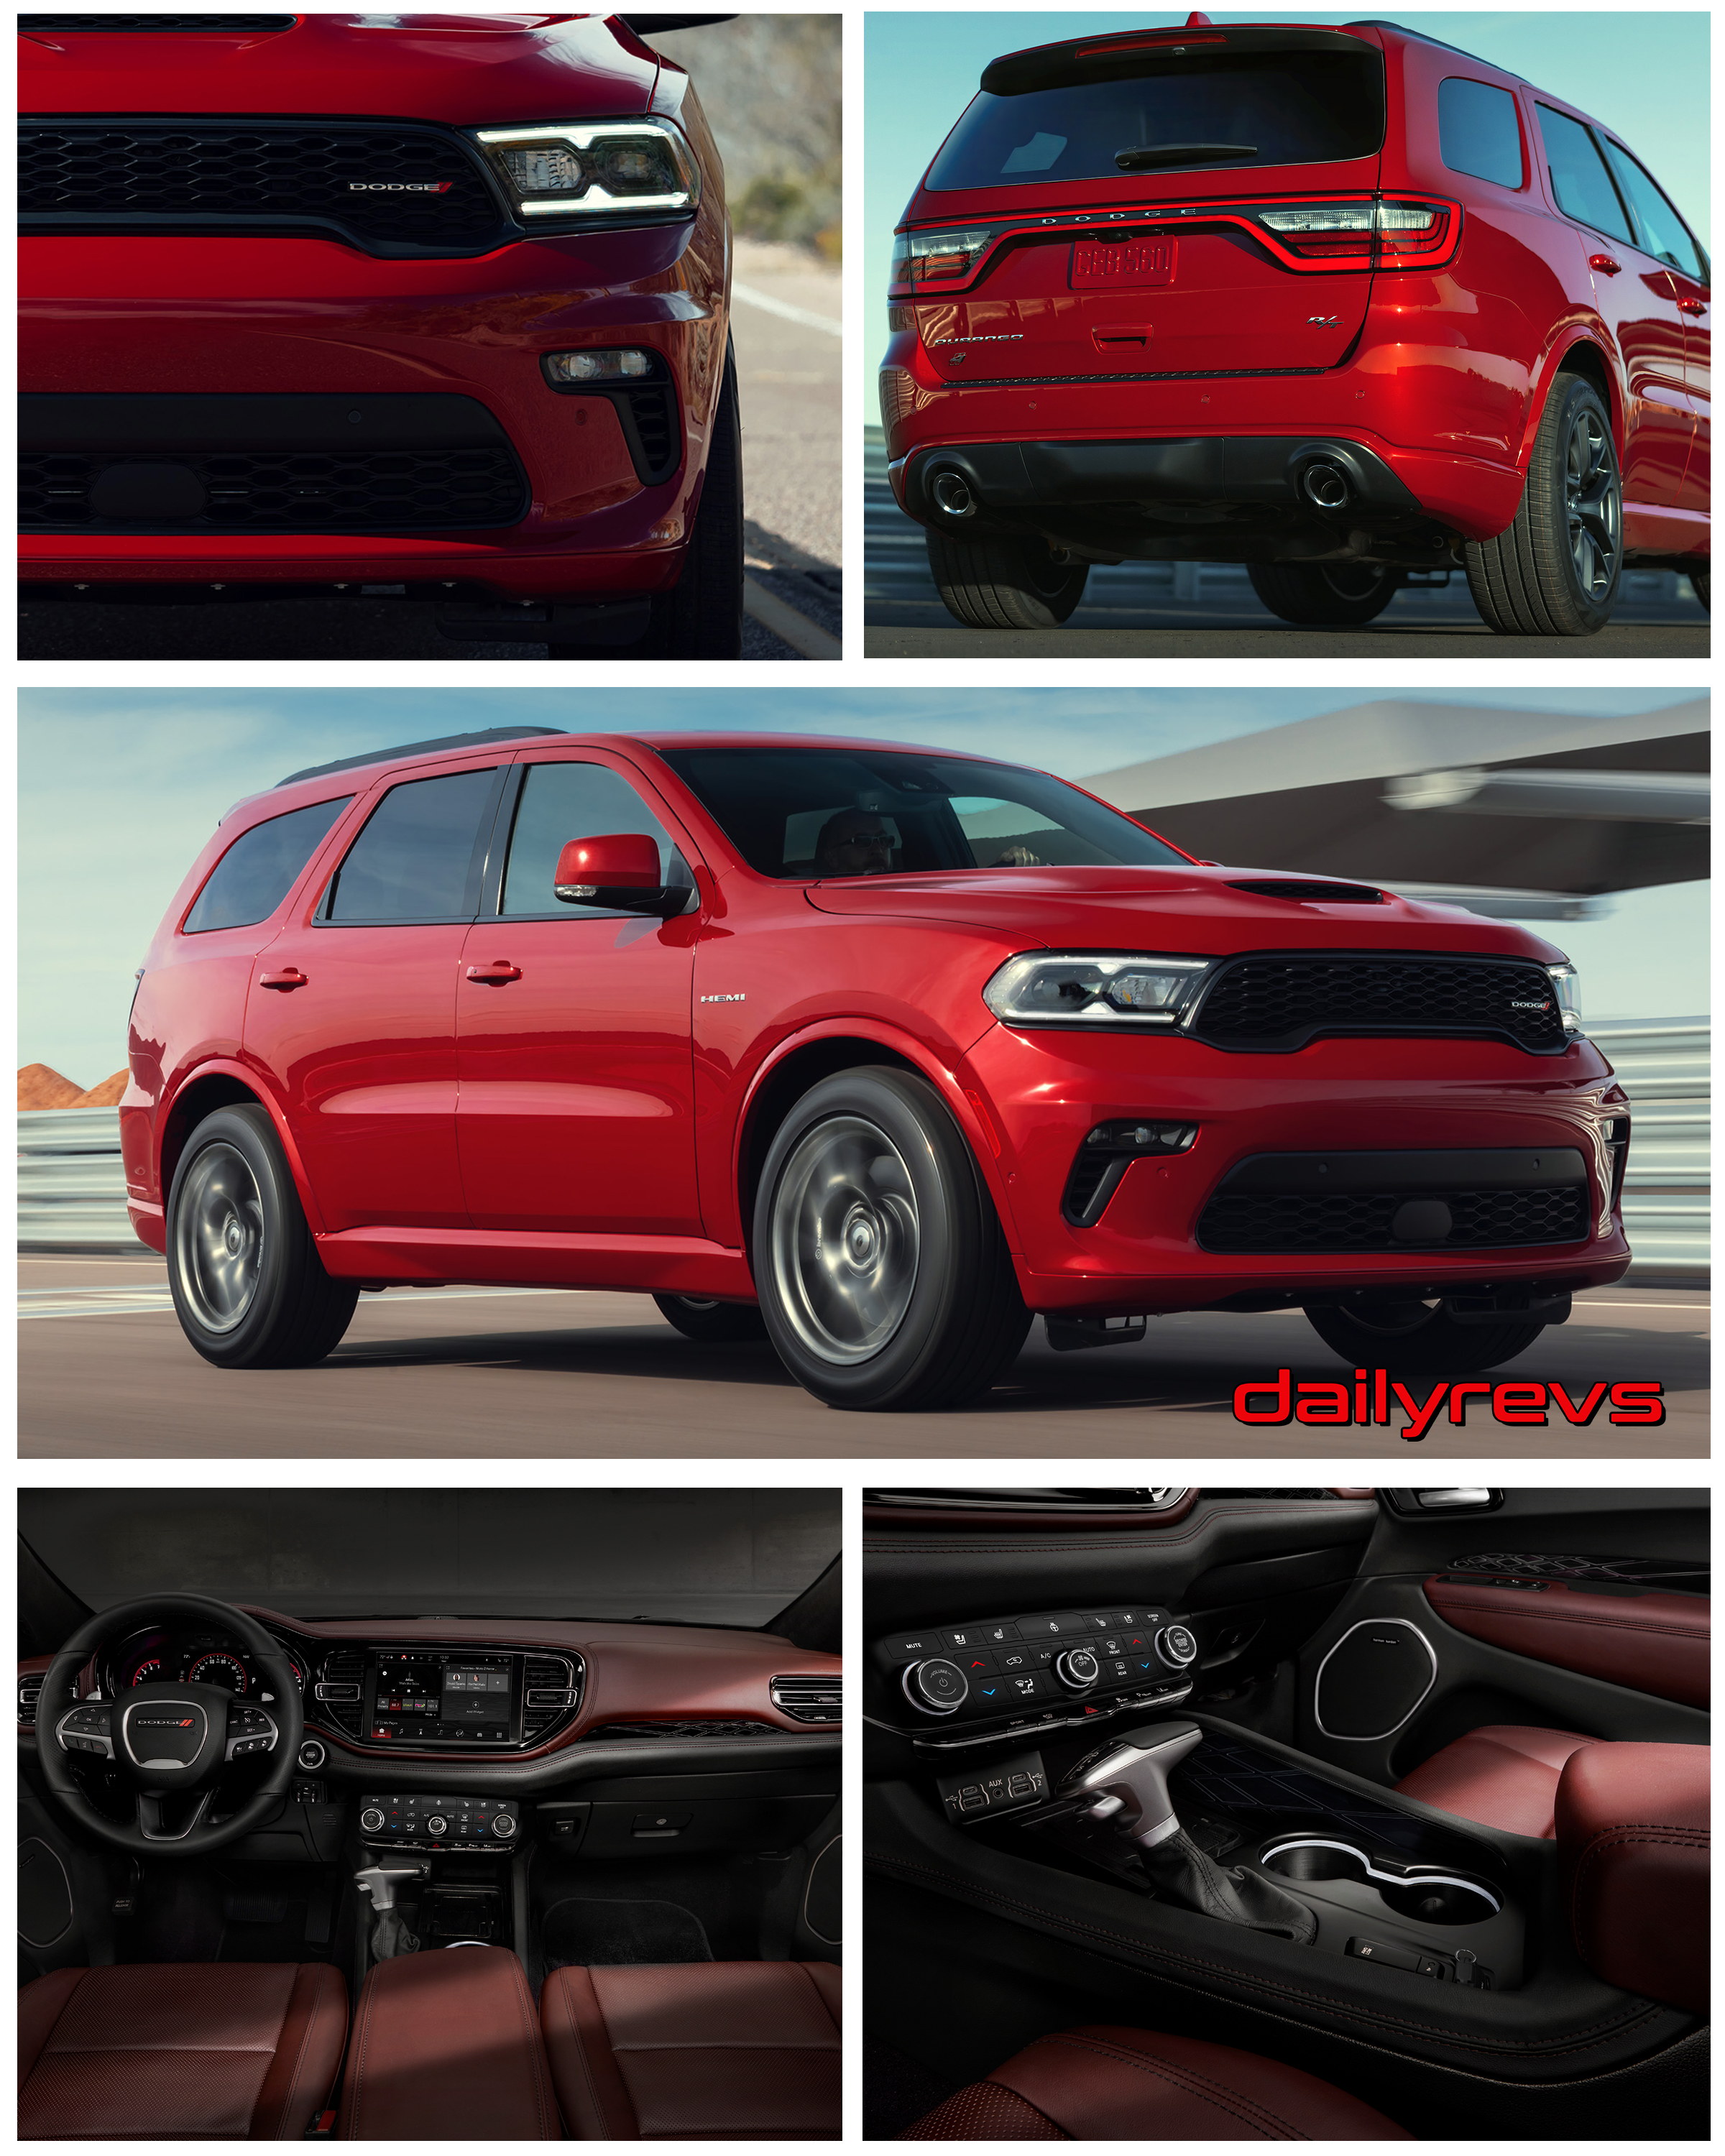 2021 Dodge Durango Dailyrevs